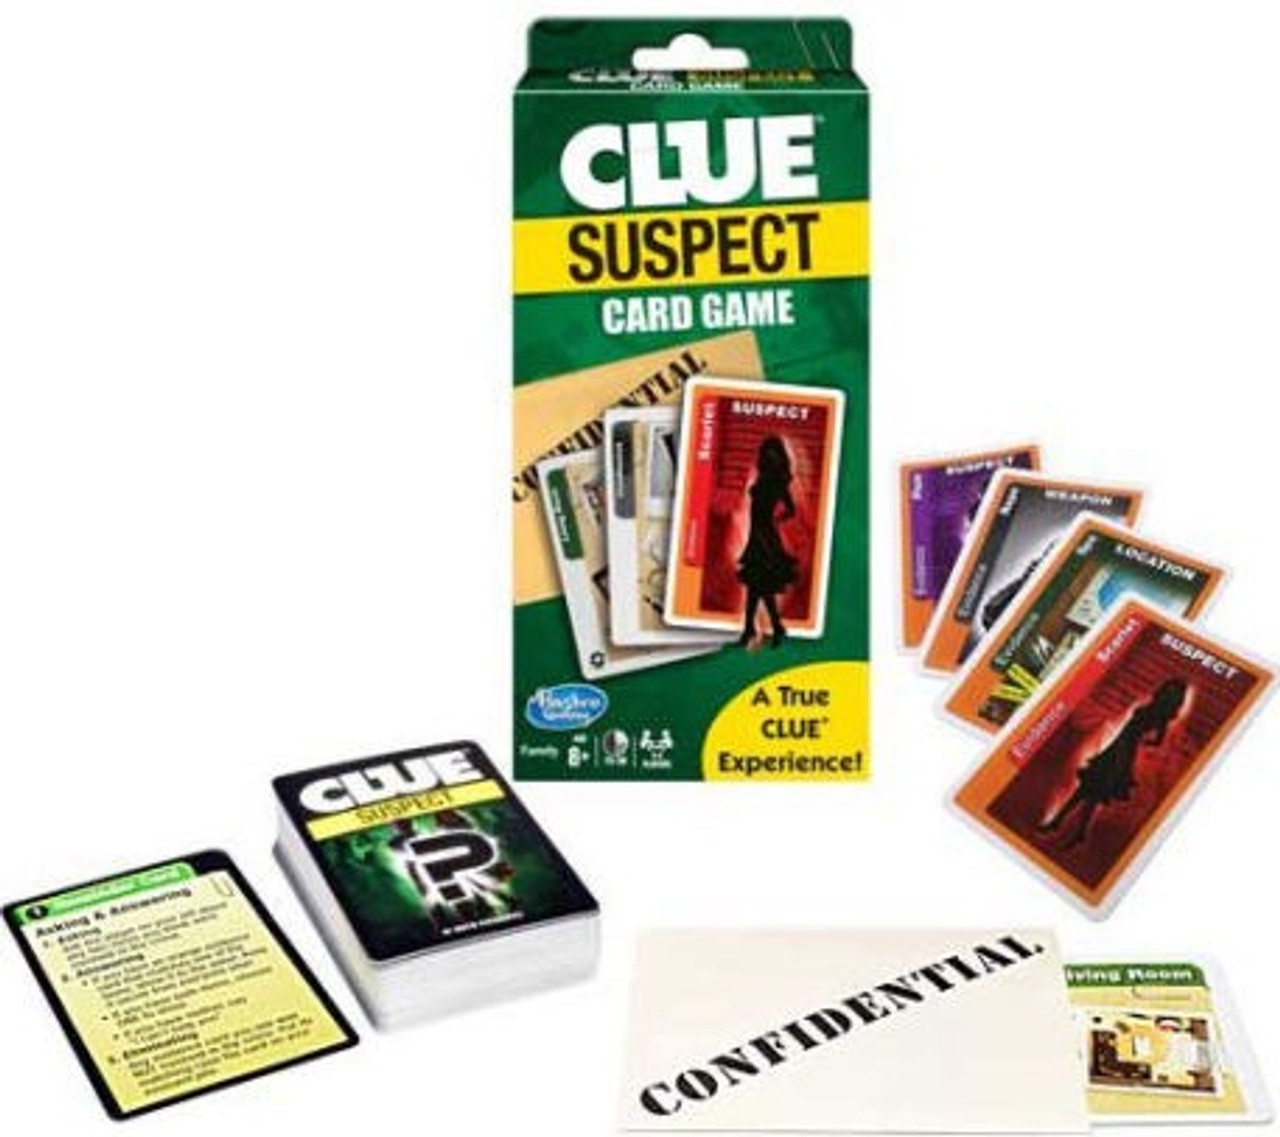 CLUE SUSPECT CARD GAME